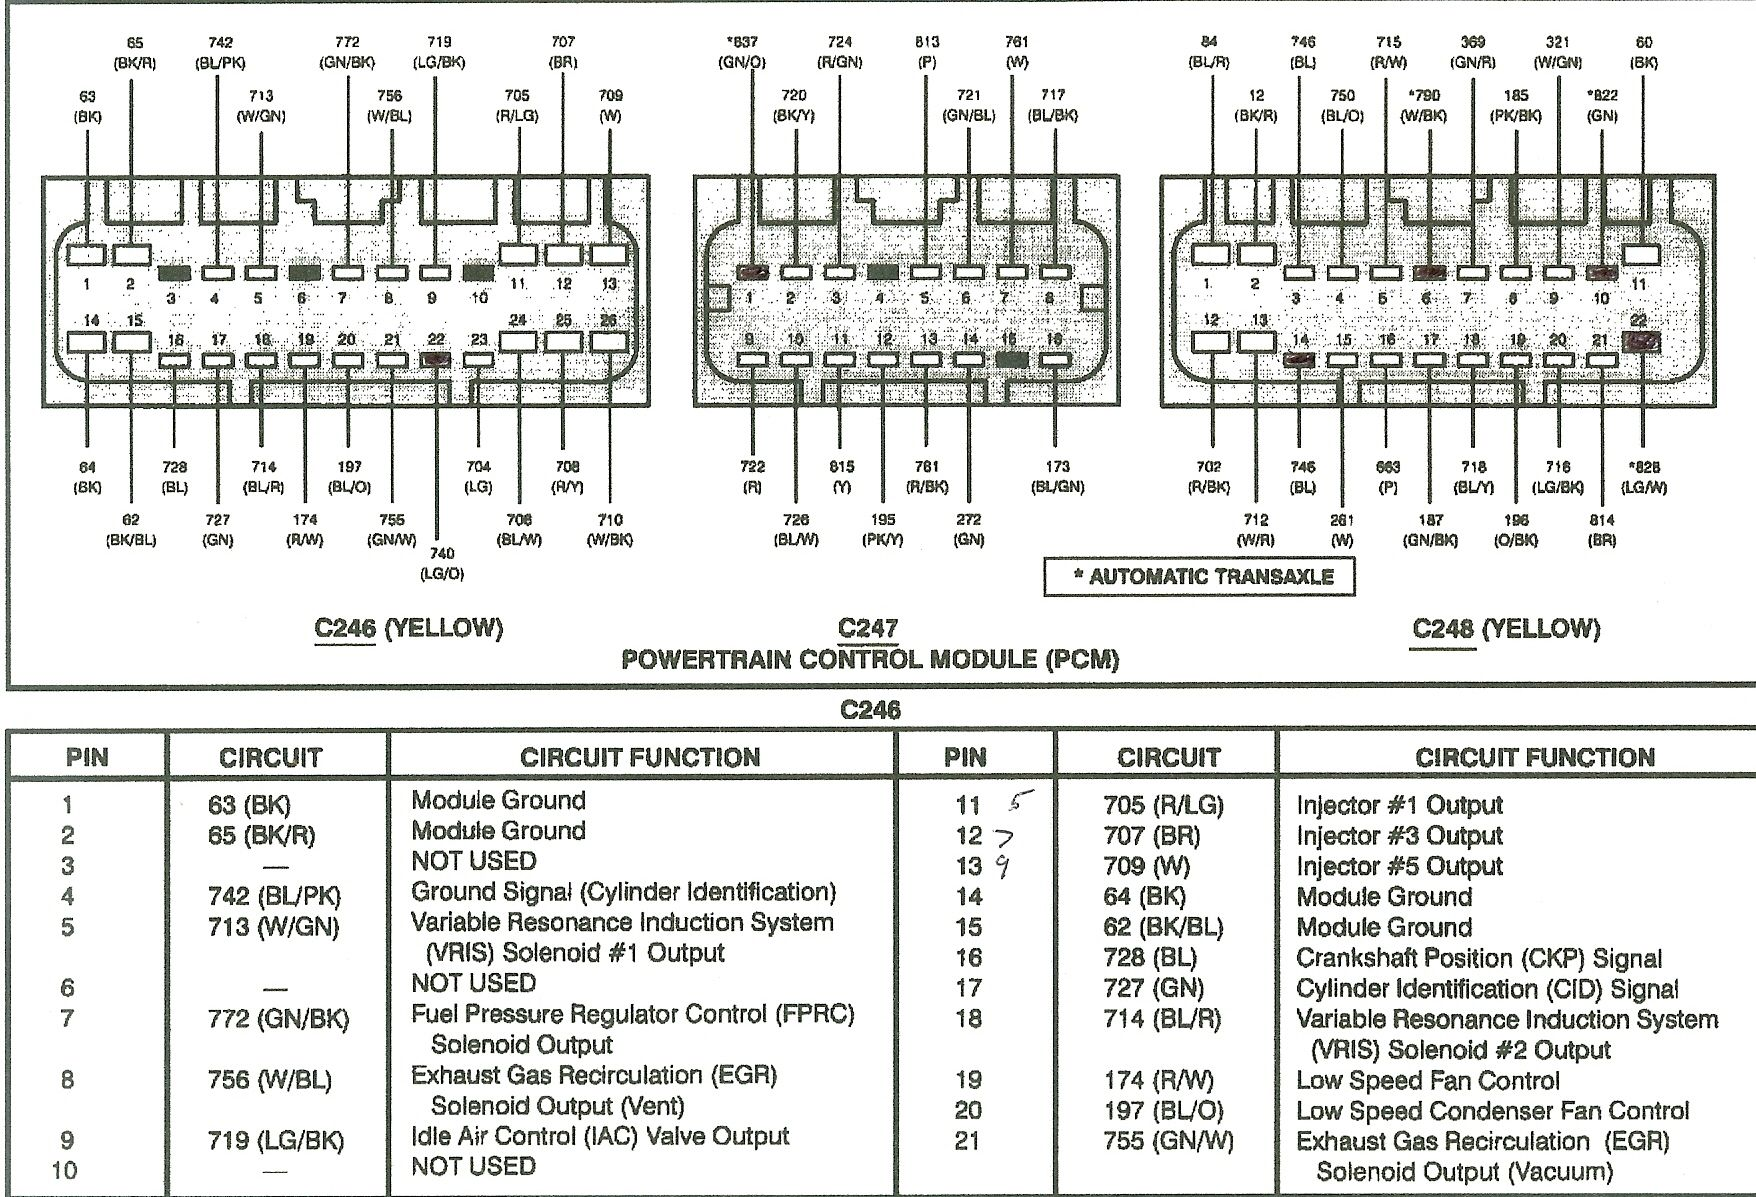 pinouts wiring diagram pcm to ecm 4.7 2002 dodge ram